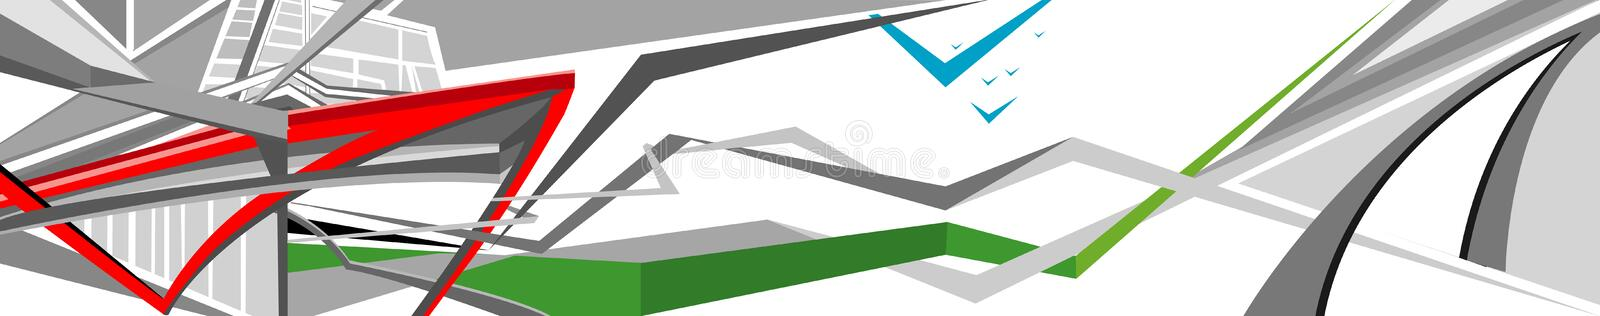 Abstract backround vector illustration